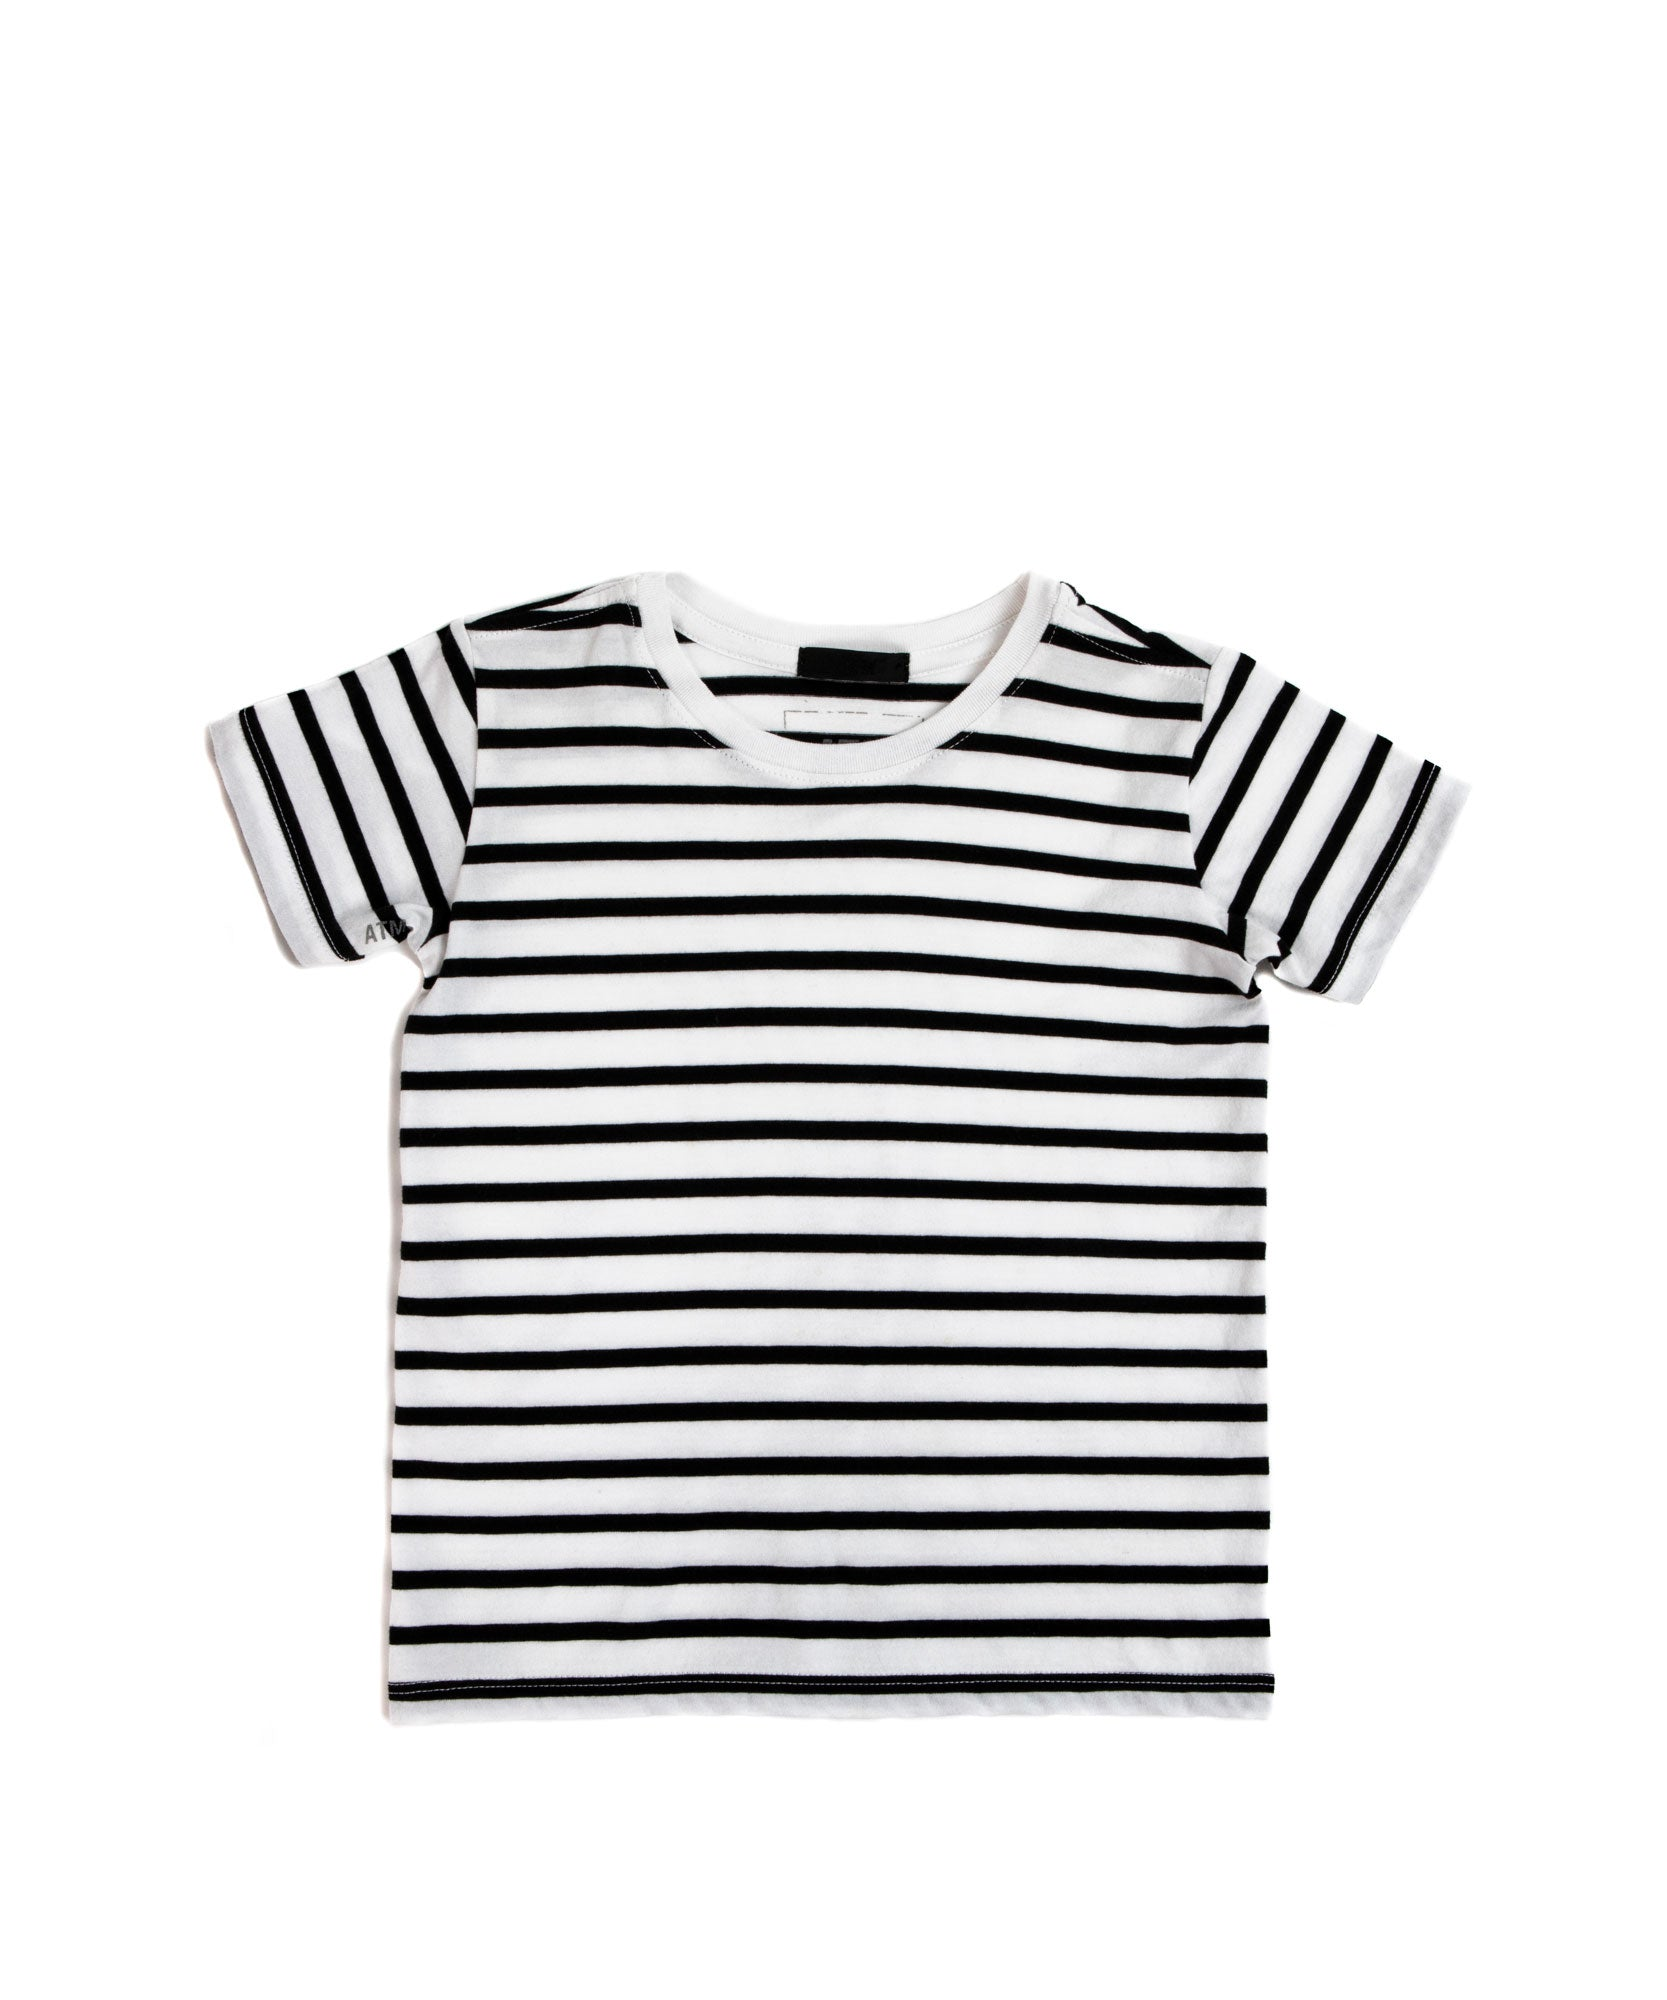 Kids Classic Jersey Short Sleeve Tee - Black/ White Stripe